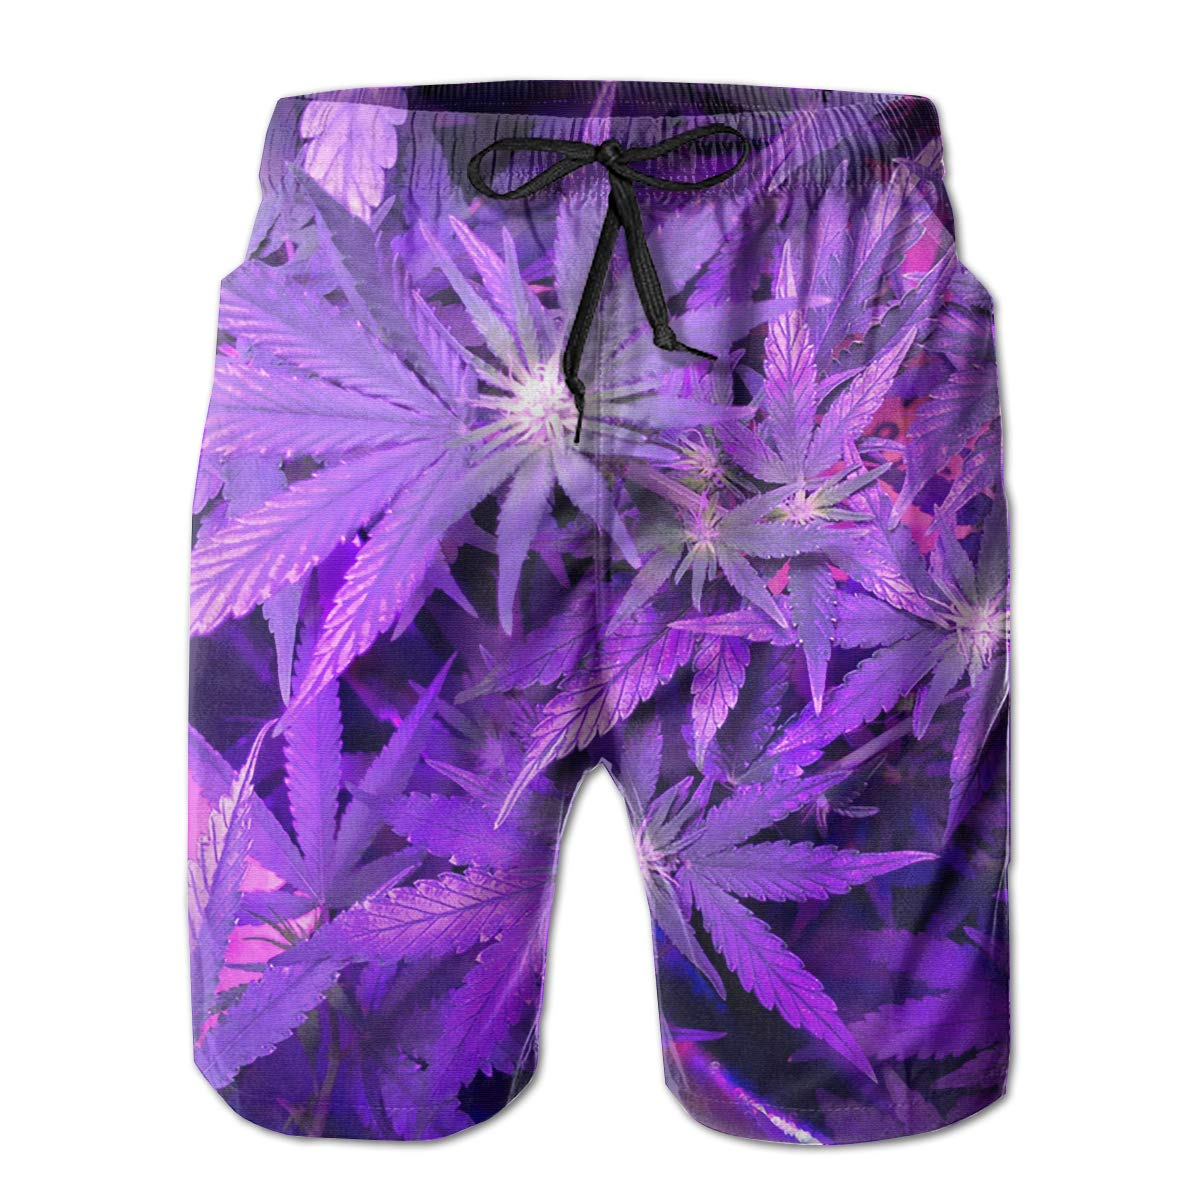 Purple Weed Leaf Mens Swim Trunks Board Beachwear Casual Beach Shorts for Men with Mesh Lining